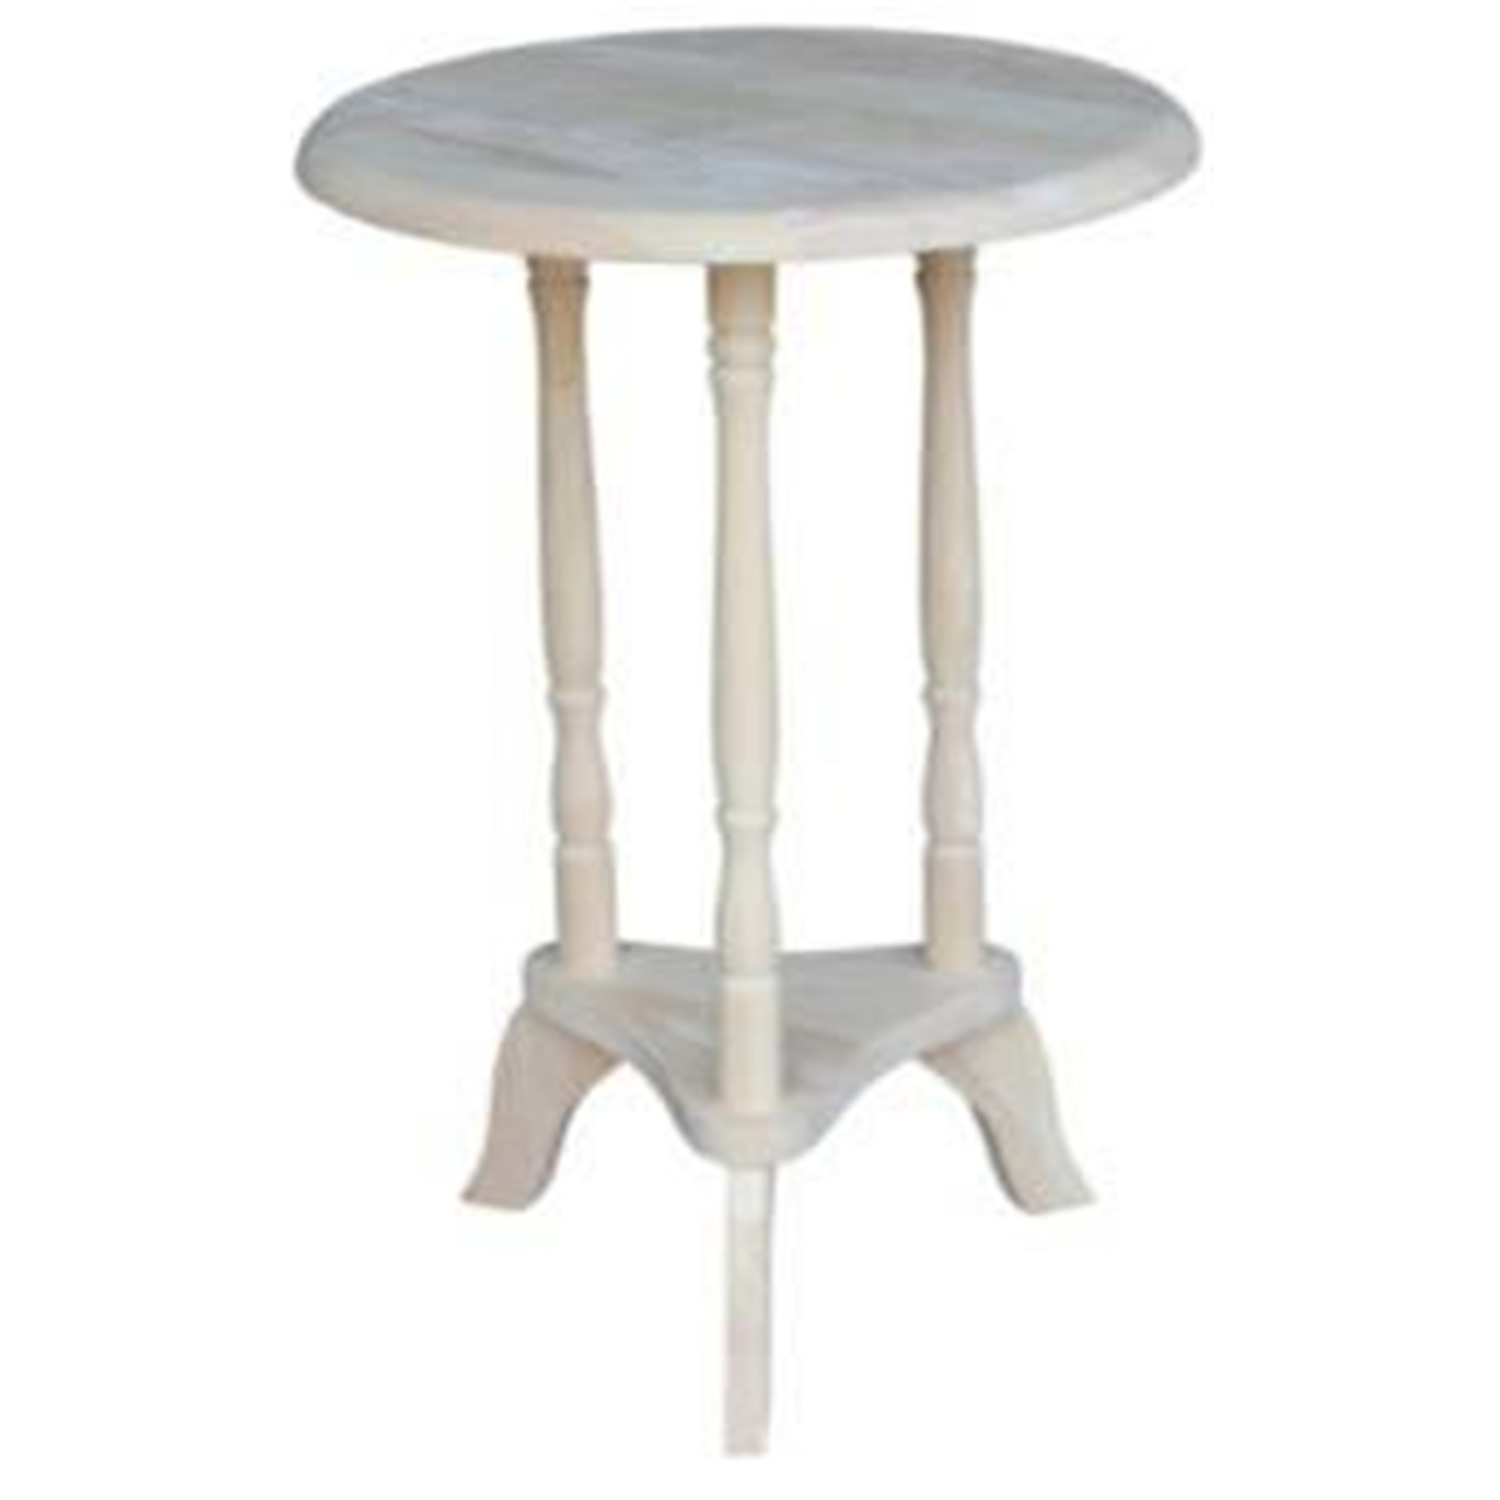 international concepts round plant table by oj commerce ot 601 66